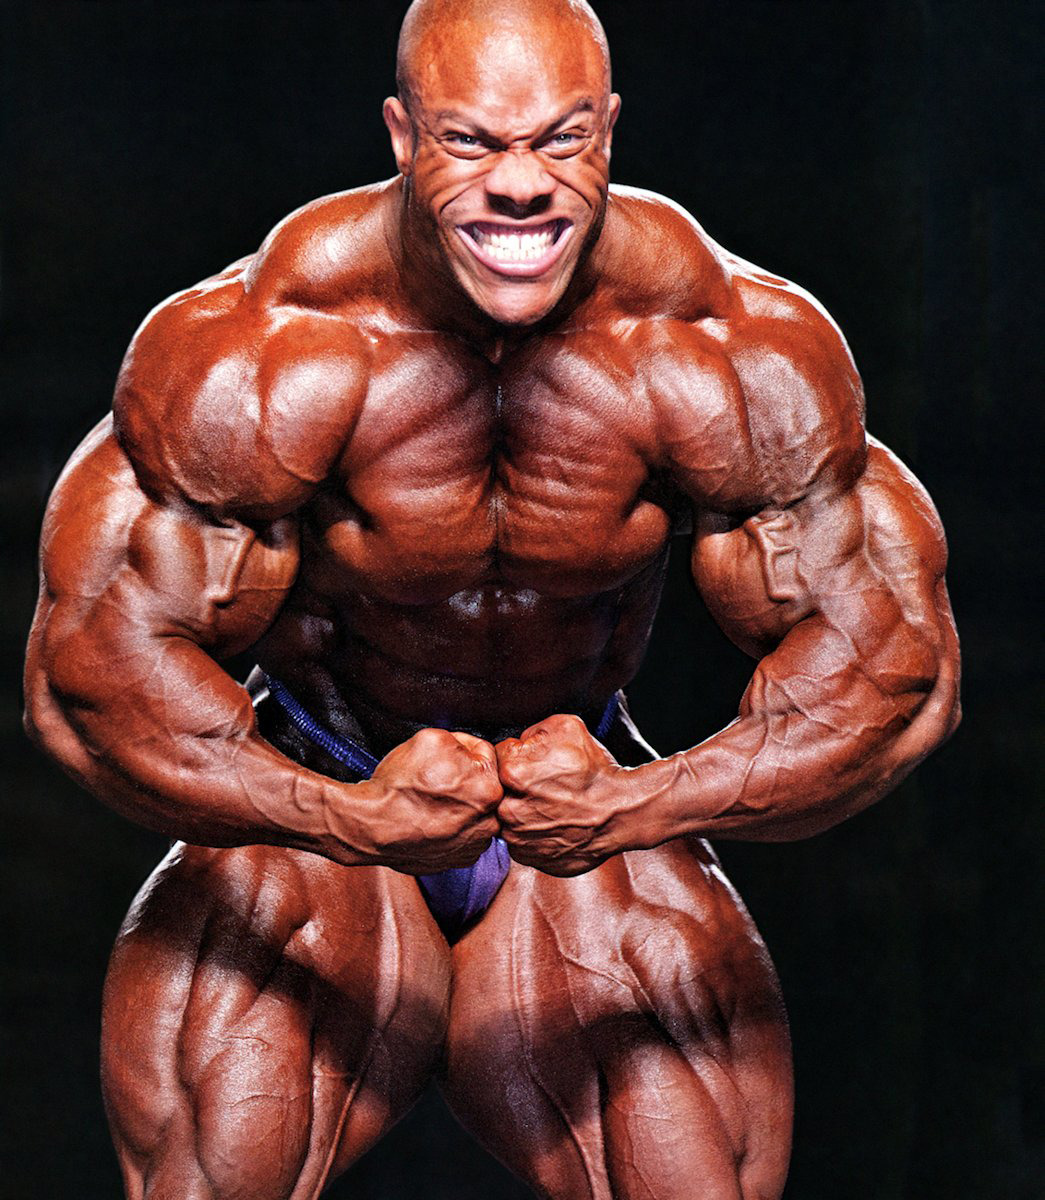 4110b_ORIG-PhilHeath_MD_864JJ.jpg